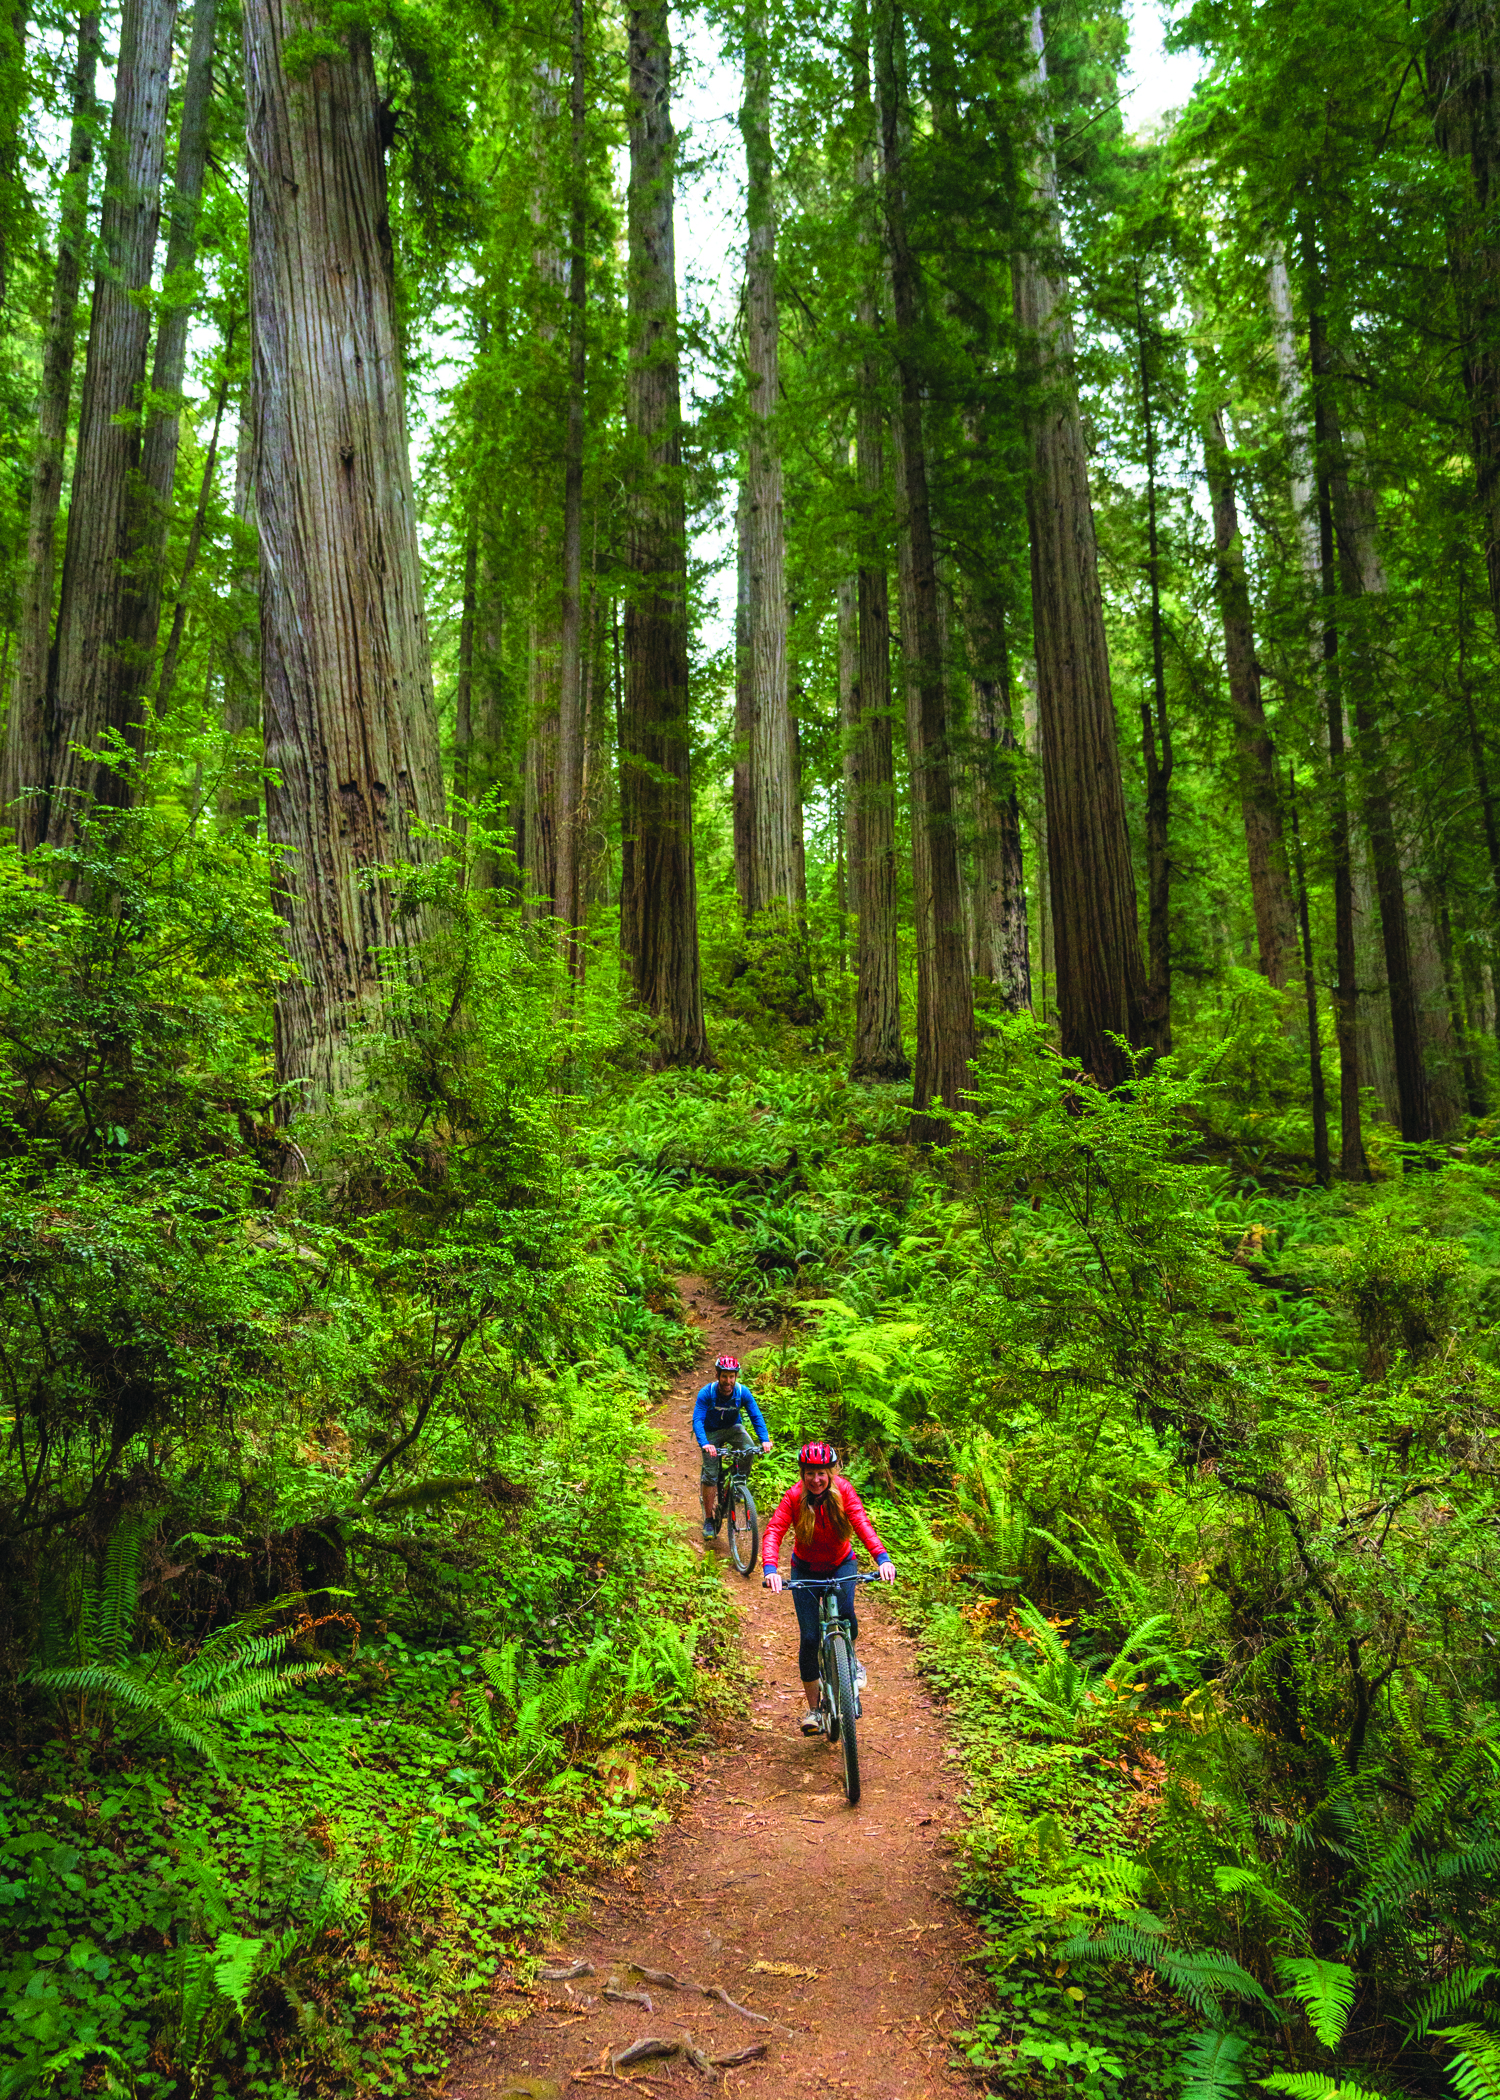 Biking among old-growth redwoods at Jedediah Smith Redwoods State Park.